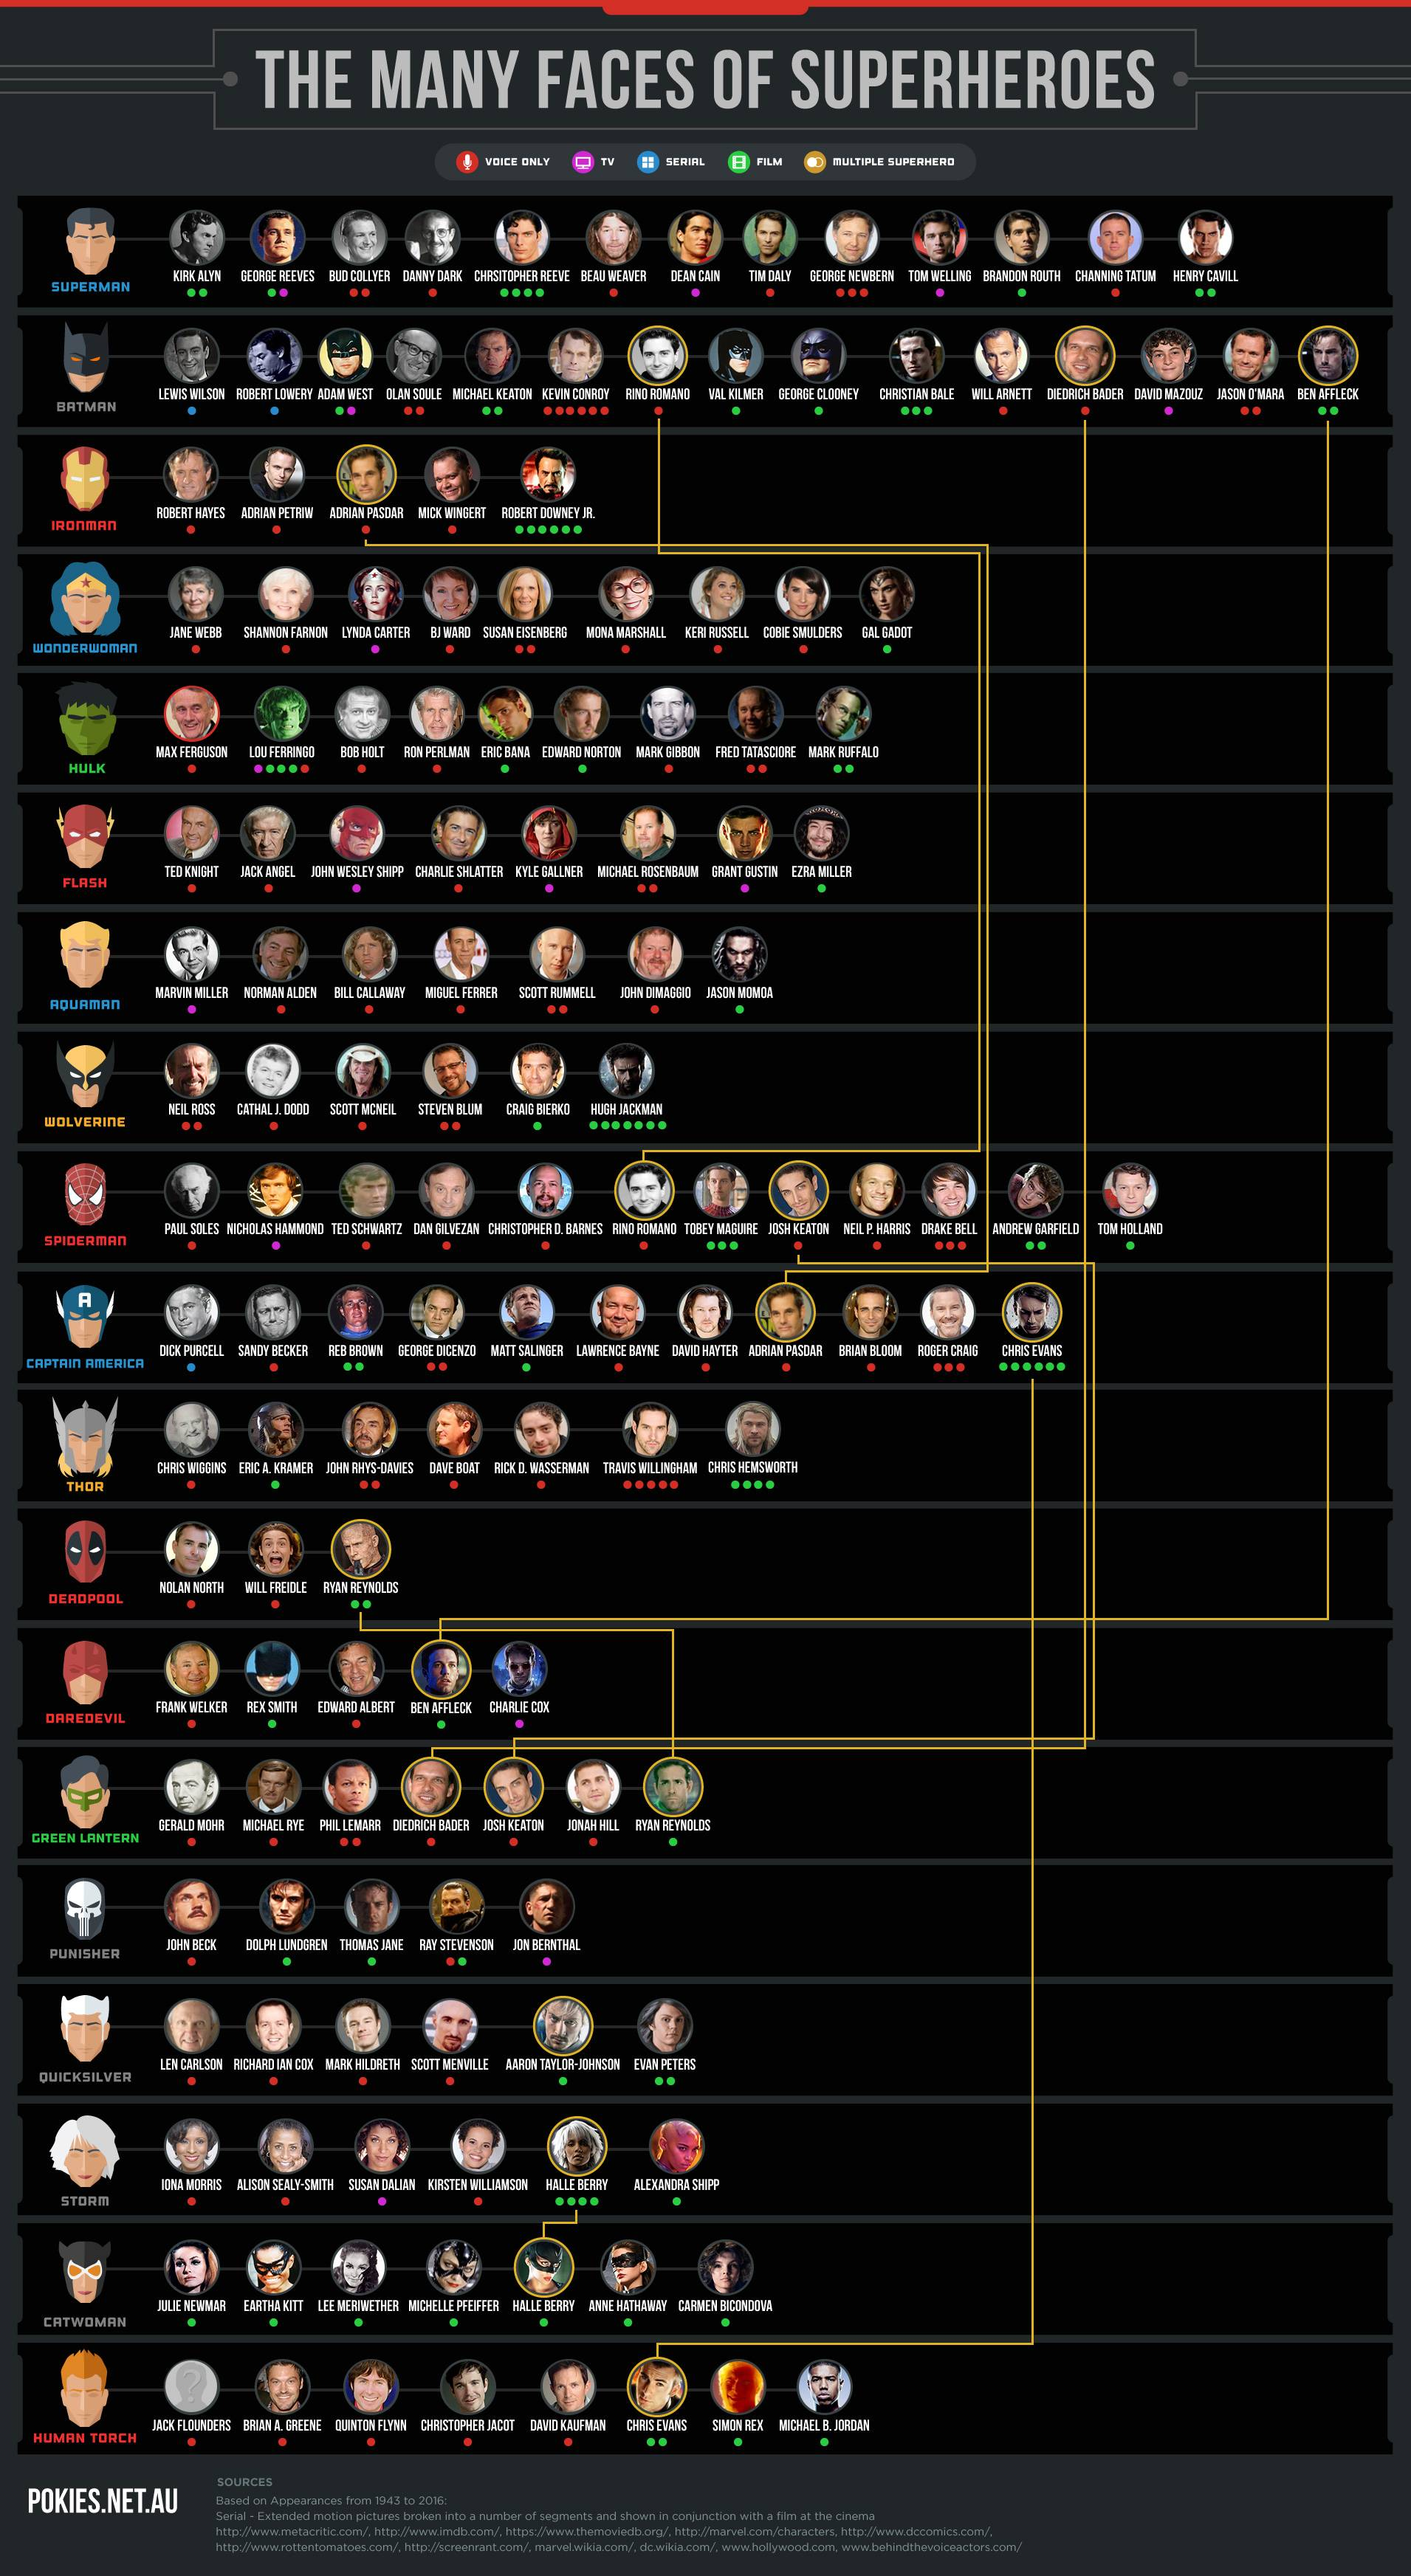 Today in Movie Culture: Movie Villains Assemble for 'Suicide Squad' B Team, the Many Faces of Superheroes and More